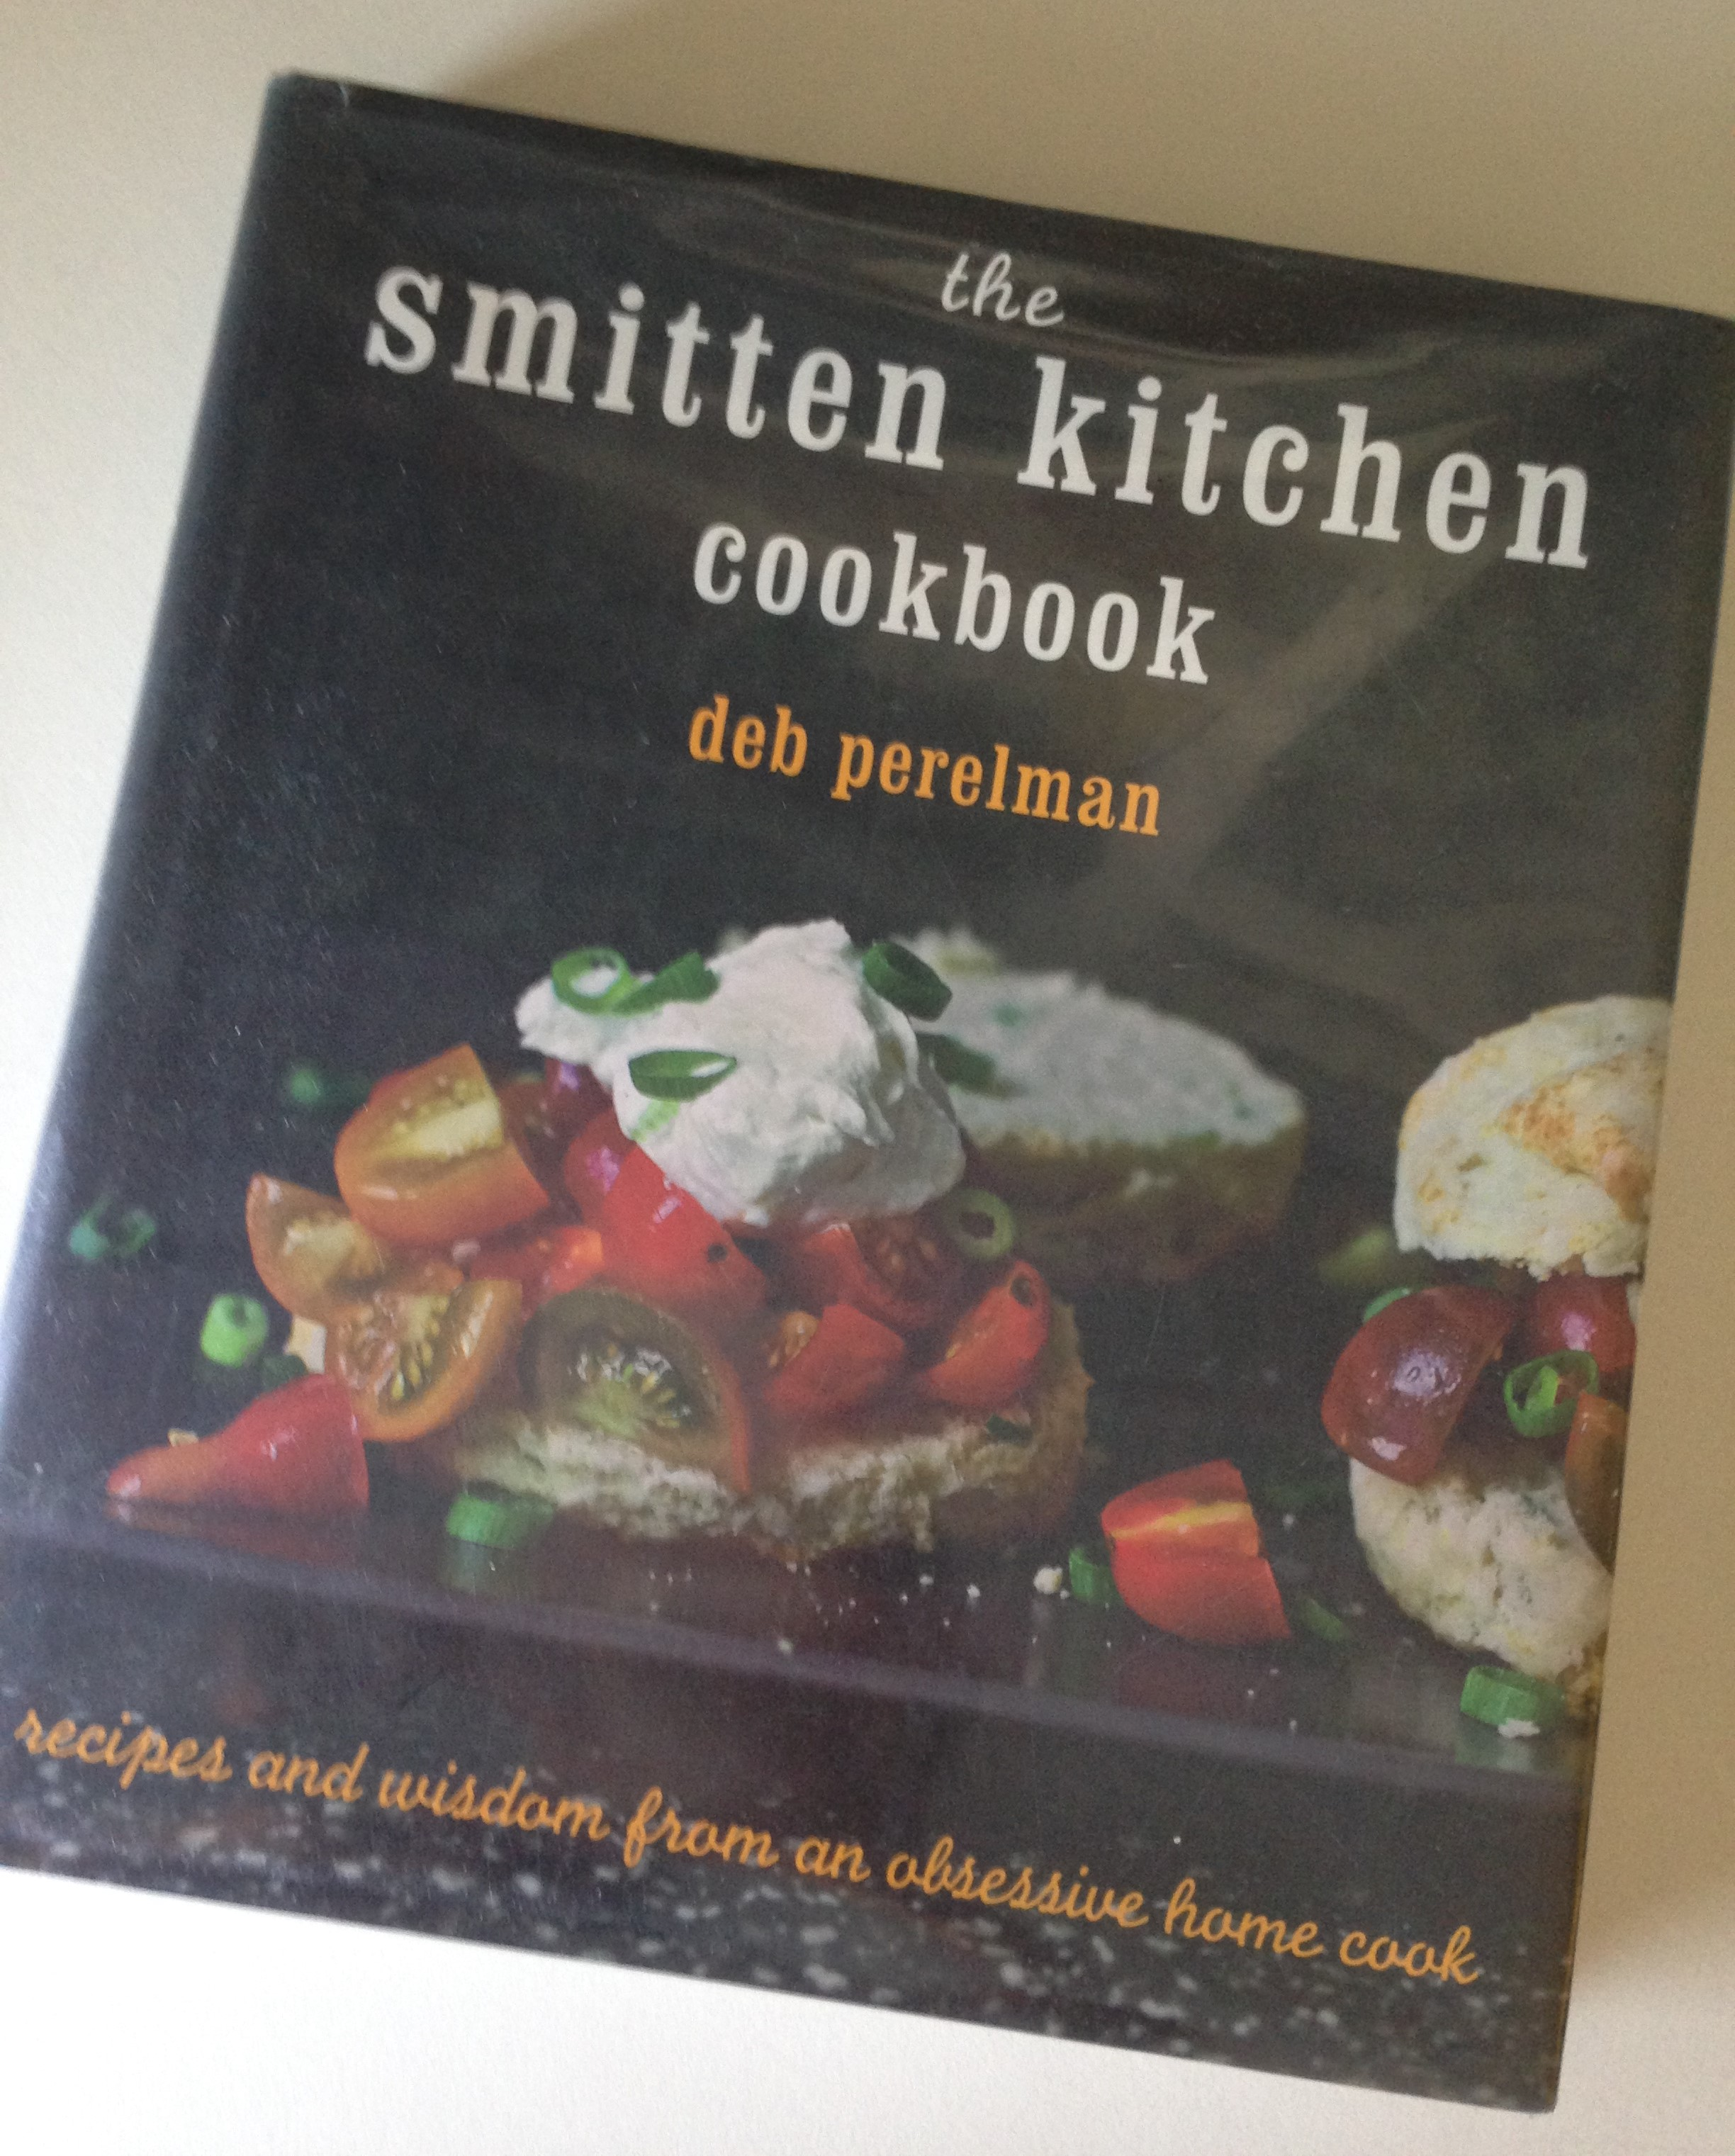 Cookbook Club The Smitten Kitchen Cookbook Deb Perelman